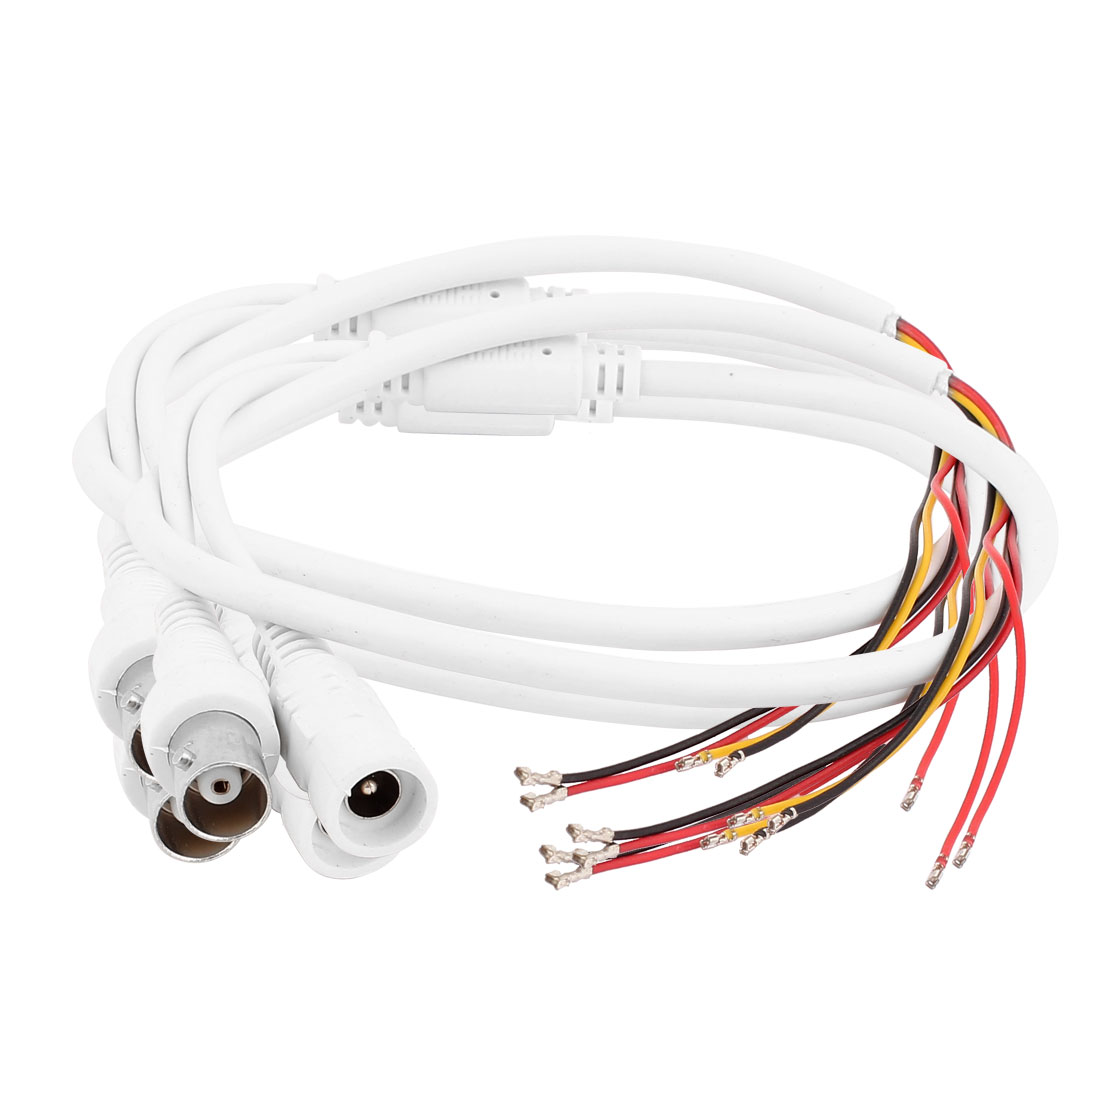 3Pcs DC Power 5 Wire 2.1x5.5mm BNC Female Jack CCTV Safety System Cable